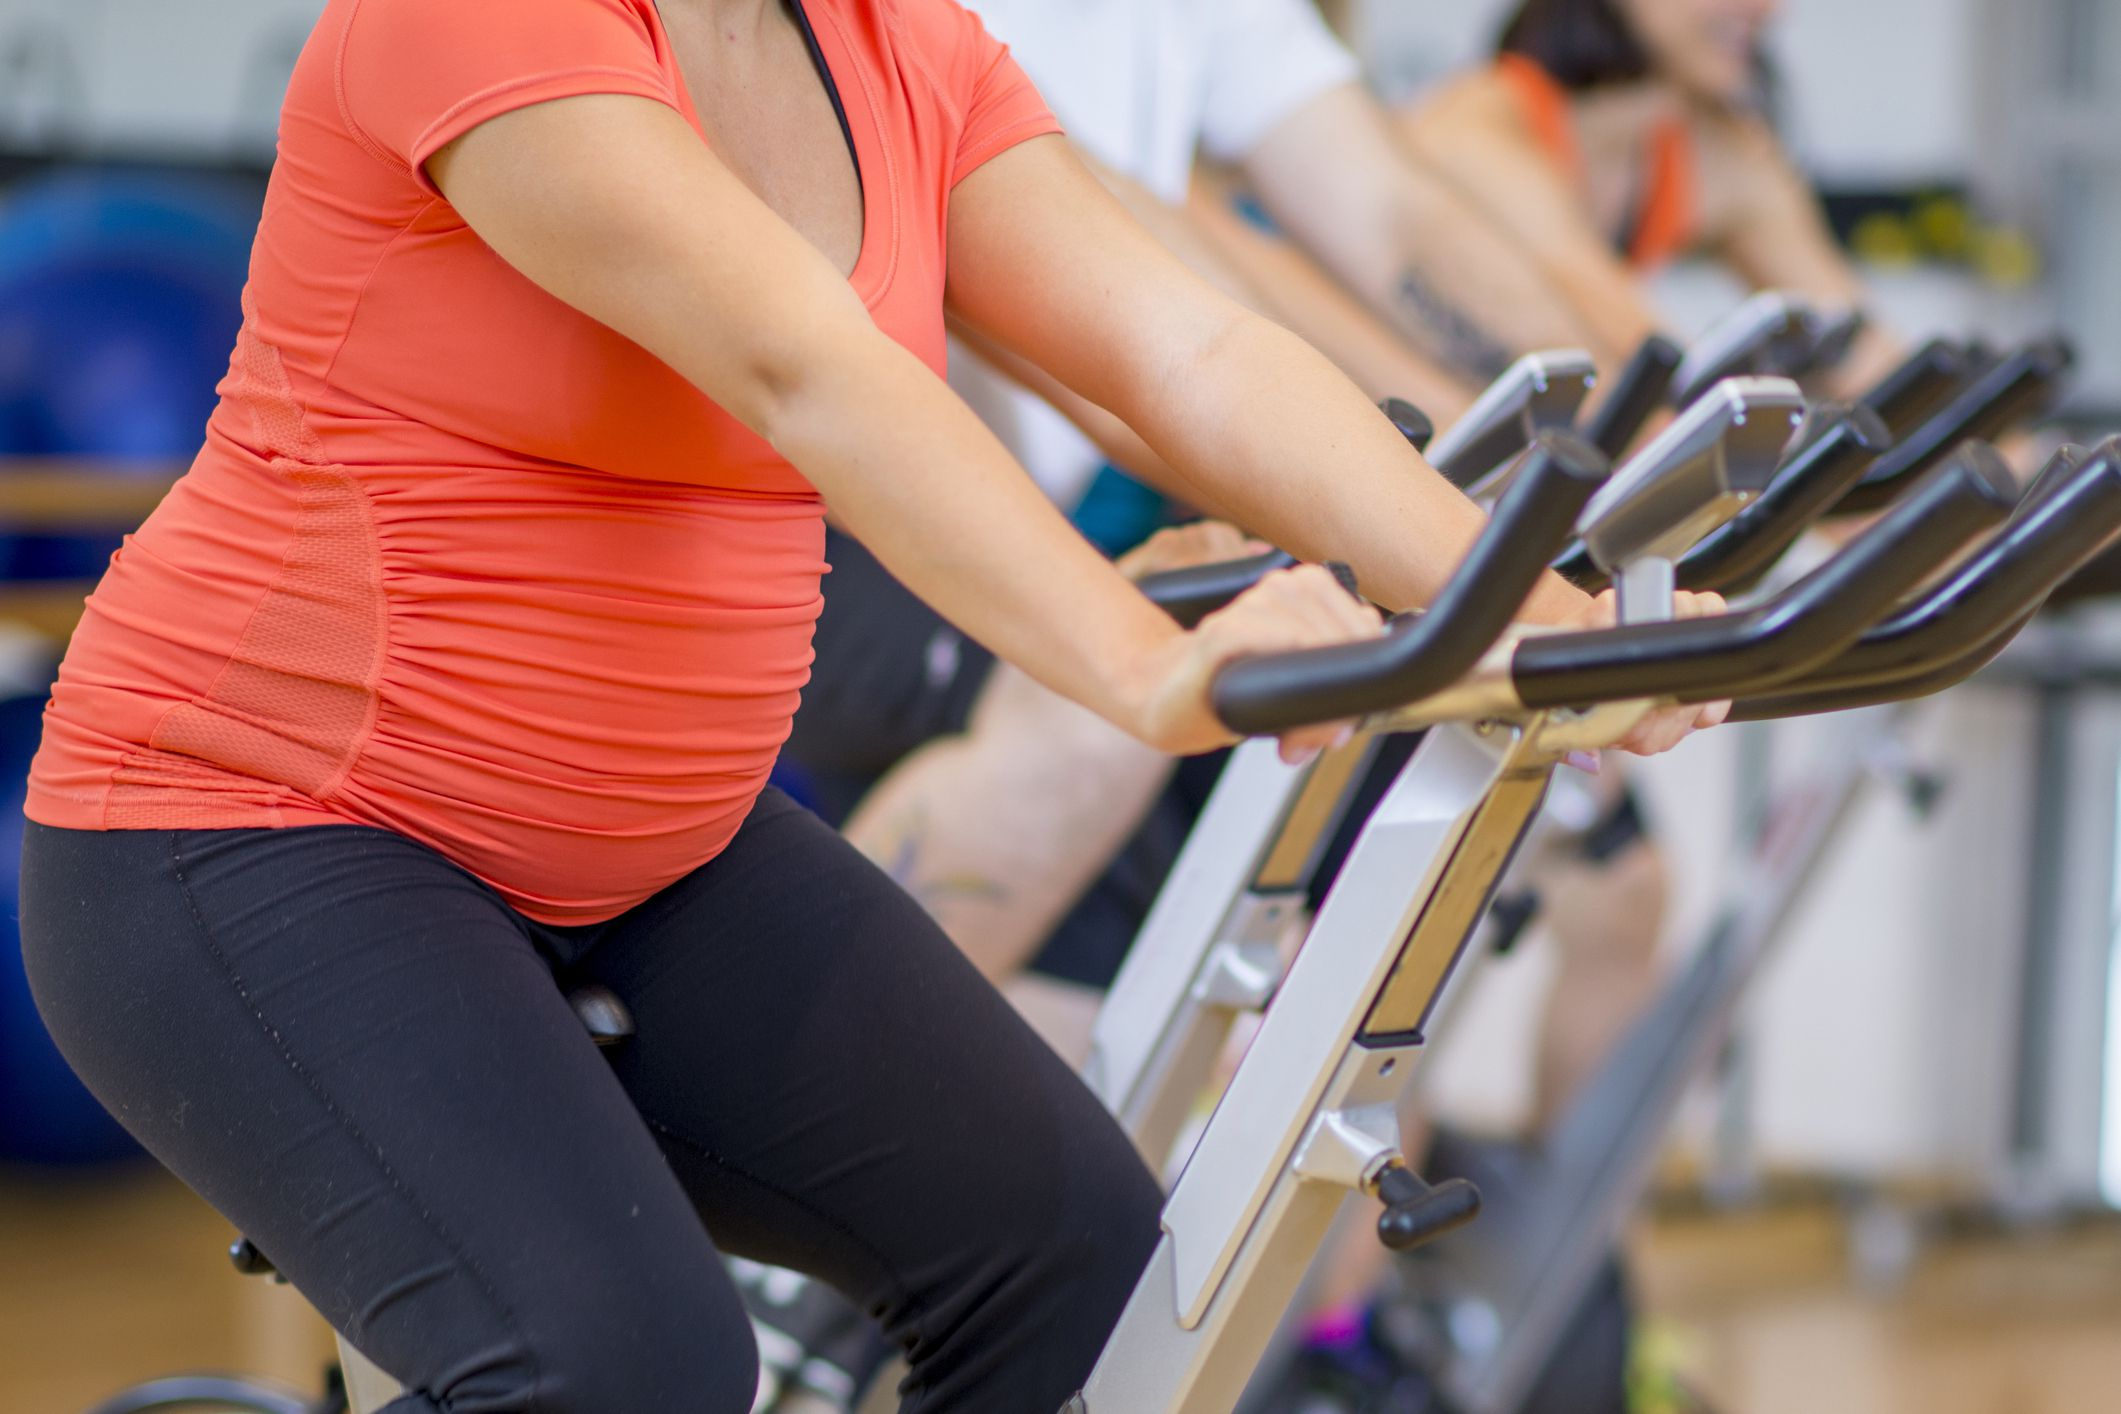 Is It Safe to For a Woman to Do Indoor Cycling While Pregnant?